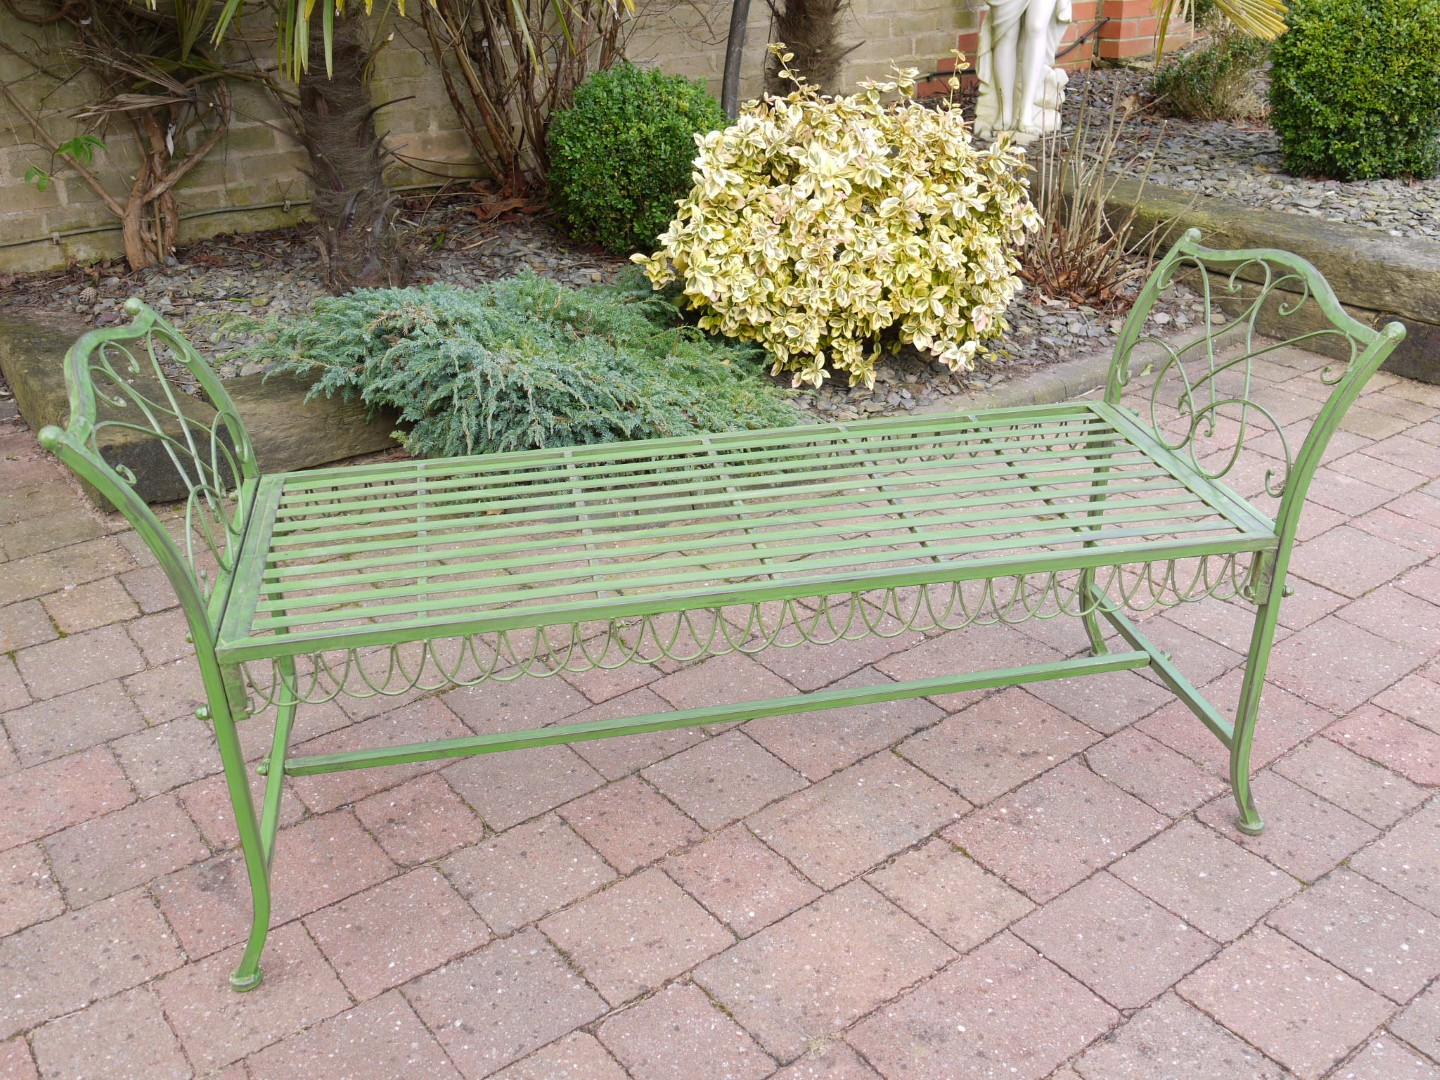 Green Slated 2 Seater Garden Bench Or Low Table Somerset Reclamation Radstock Bath Wells South West Home Living